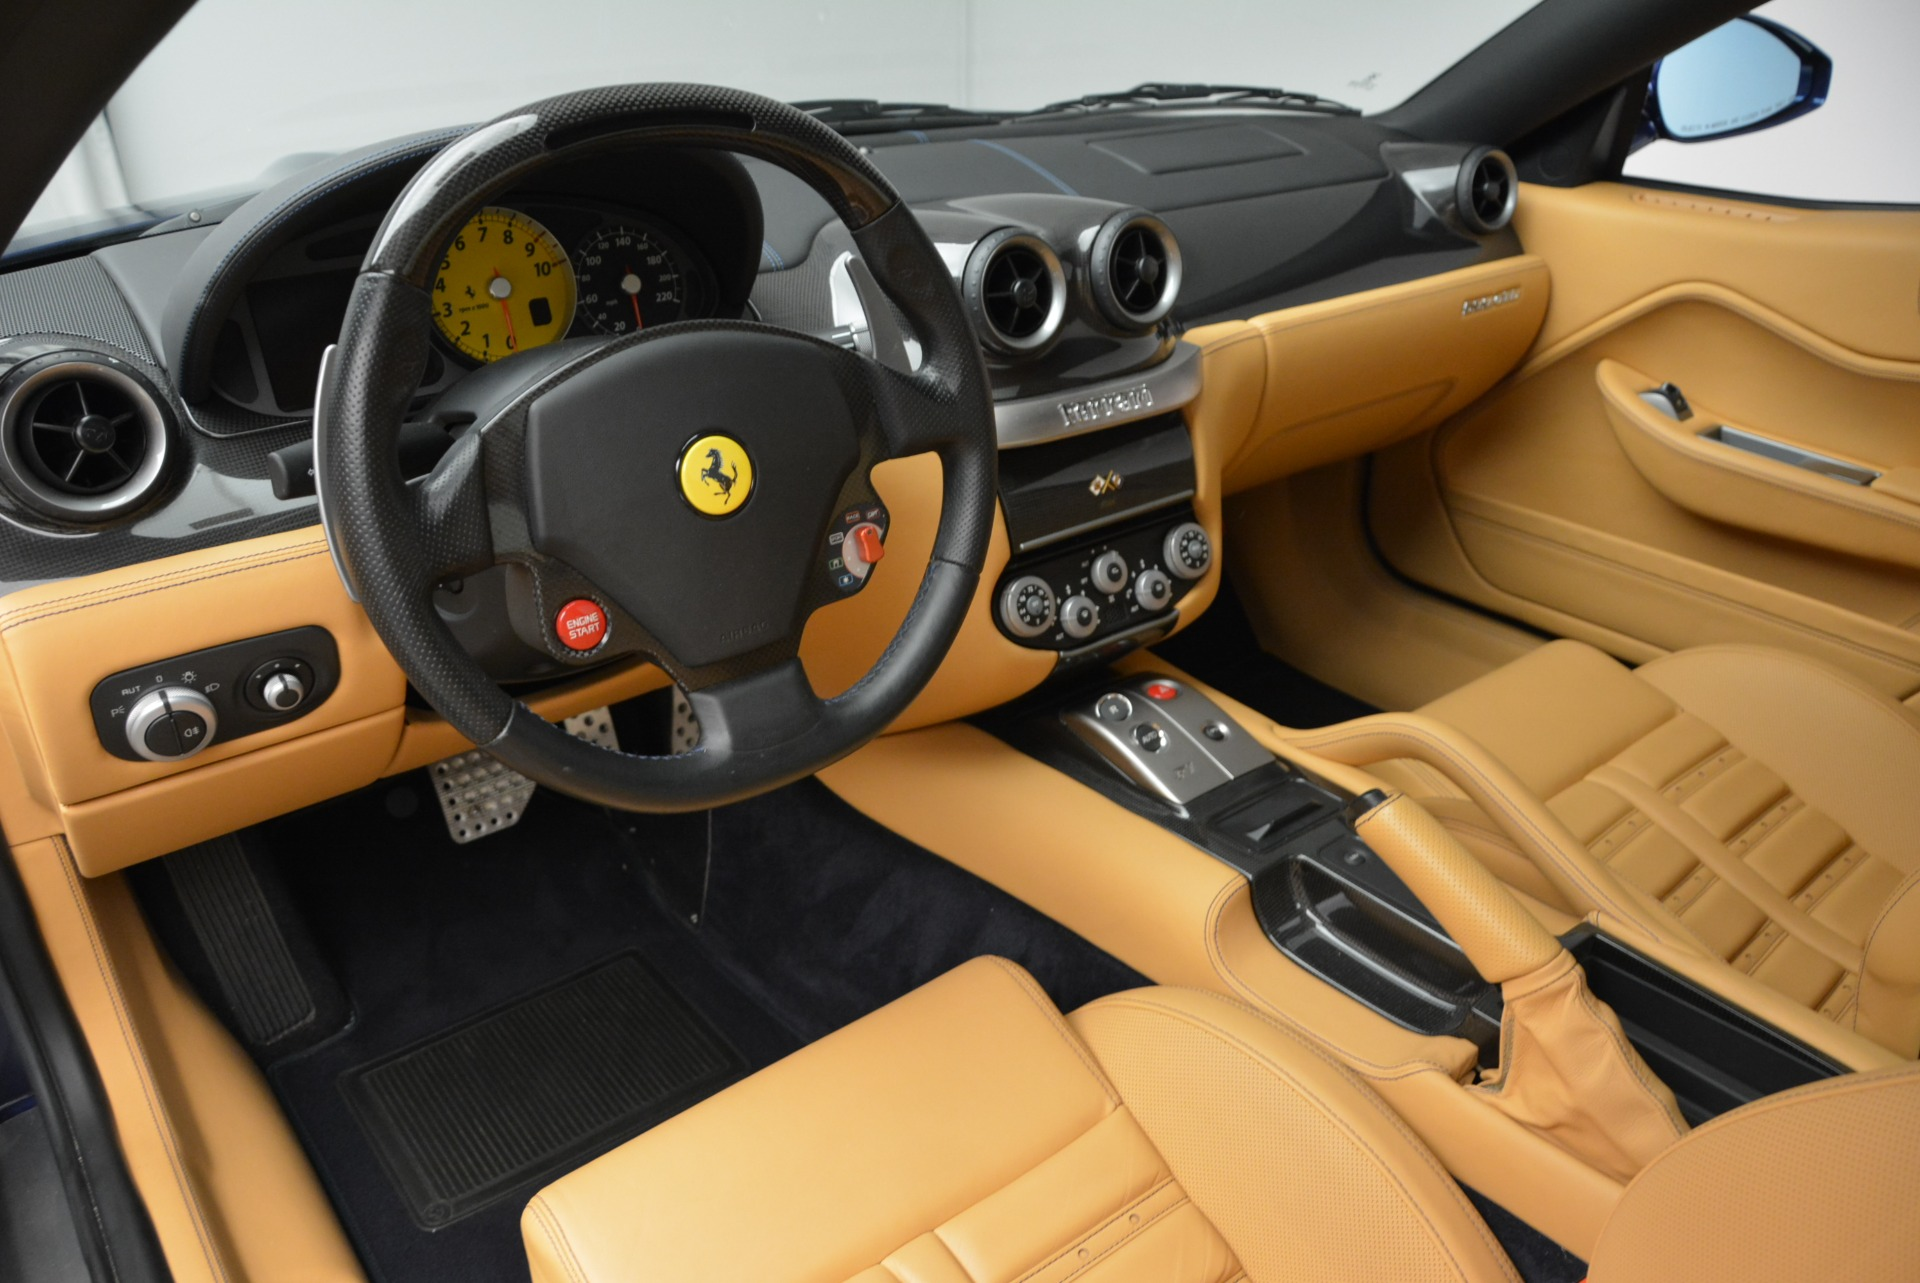 Used 2007 Ferrari 599 GTB Fiorano GTB Fiorano F1 For Sale In Westport, CT 1893_p13